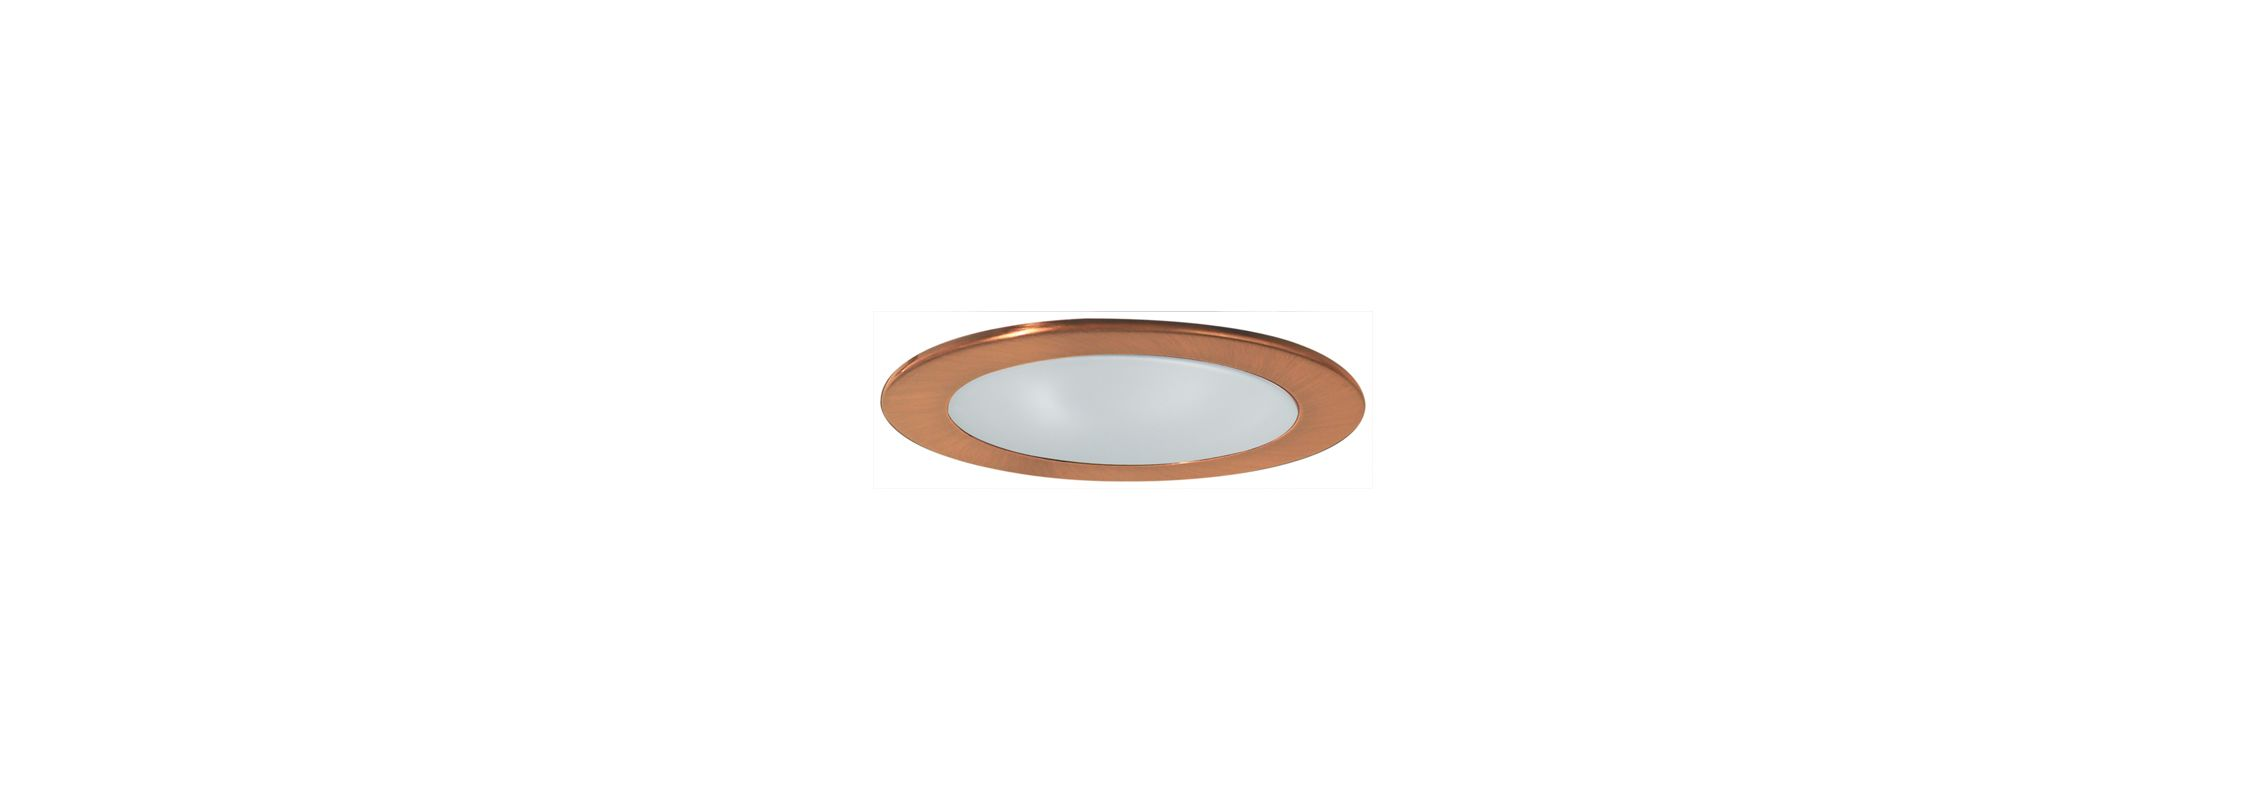 "Elco EL912 4"" Shower Trim with Frosted Lens Copper Recessed Lights"